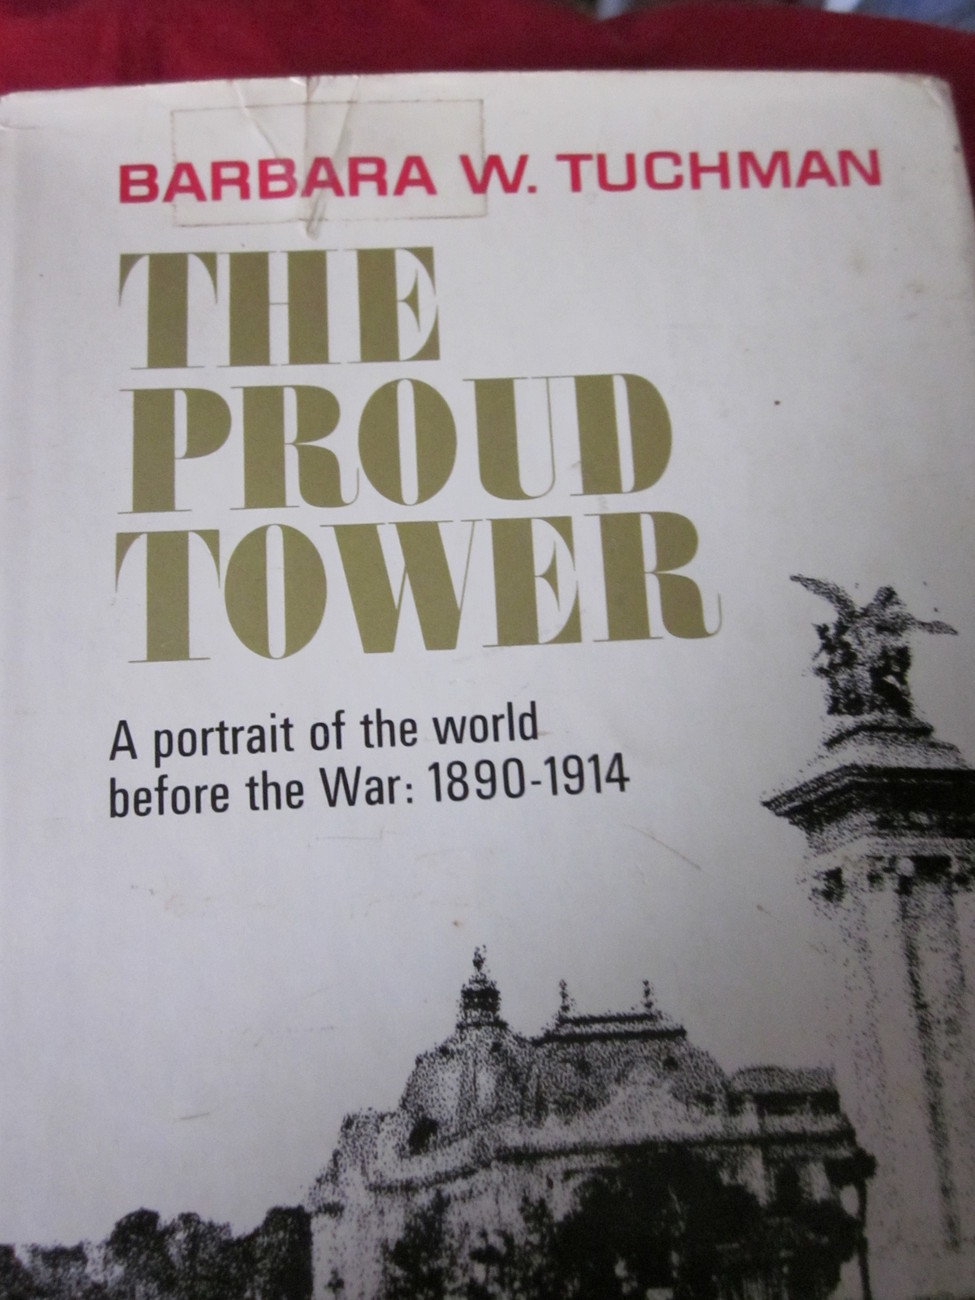 The Proud Tower by Barbara W Tuchman Pre-War 1890 - 1914